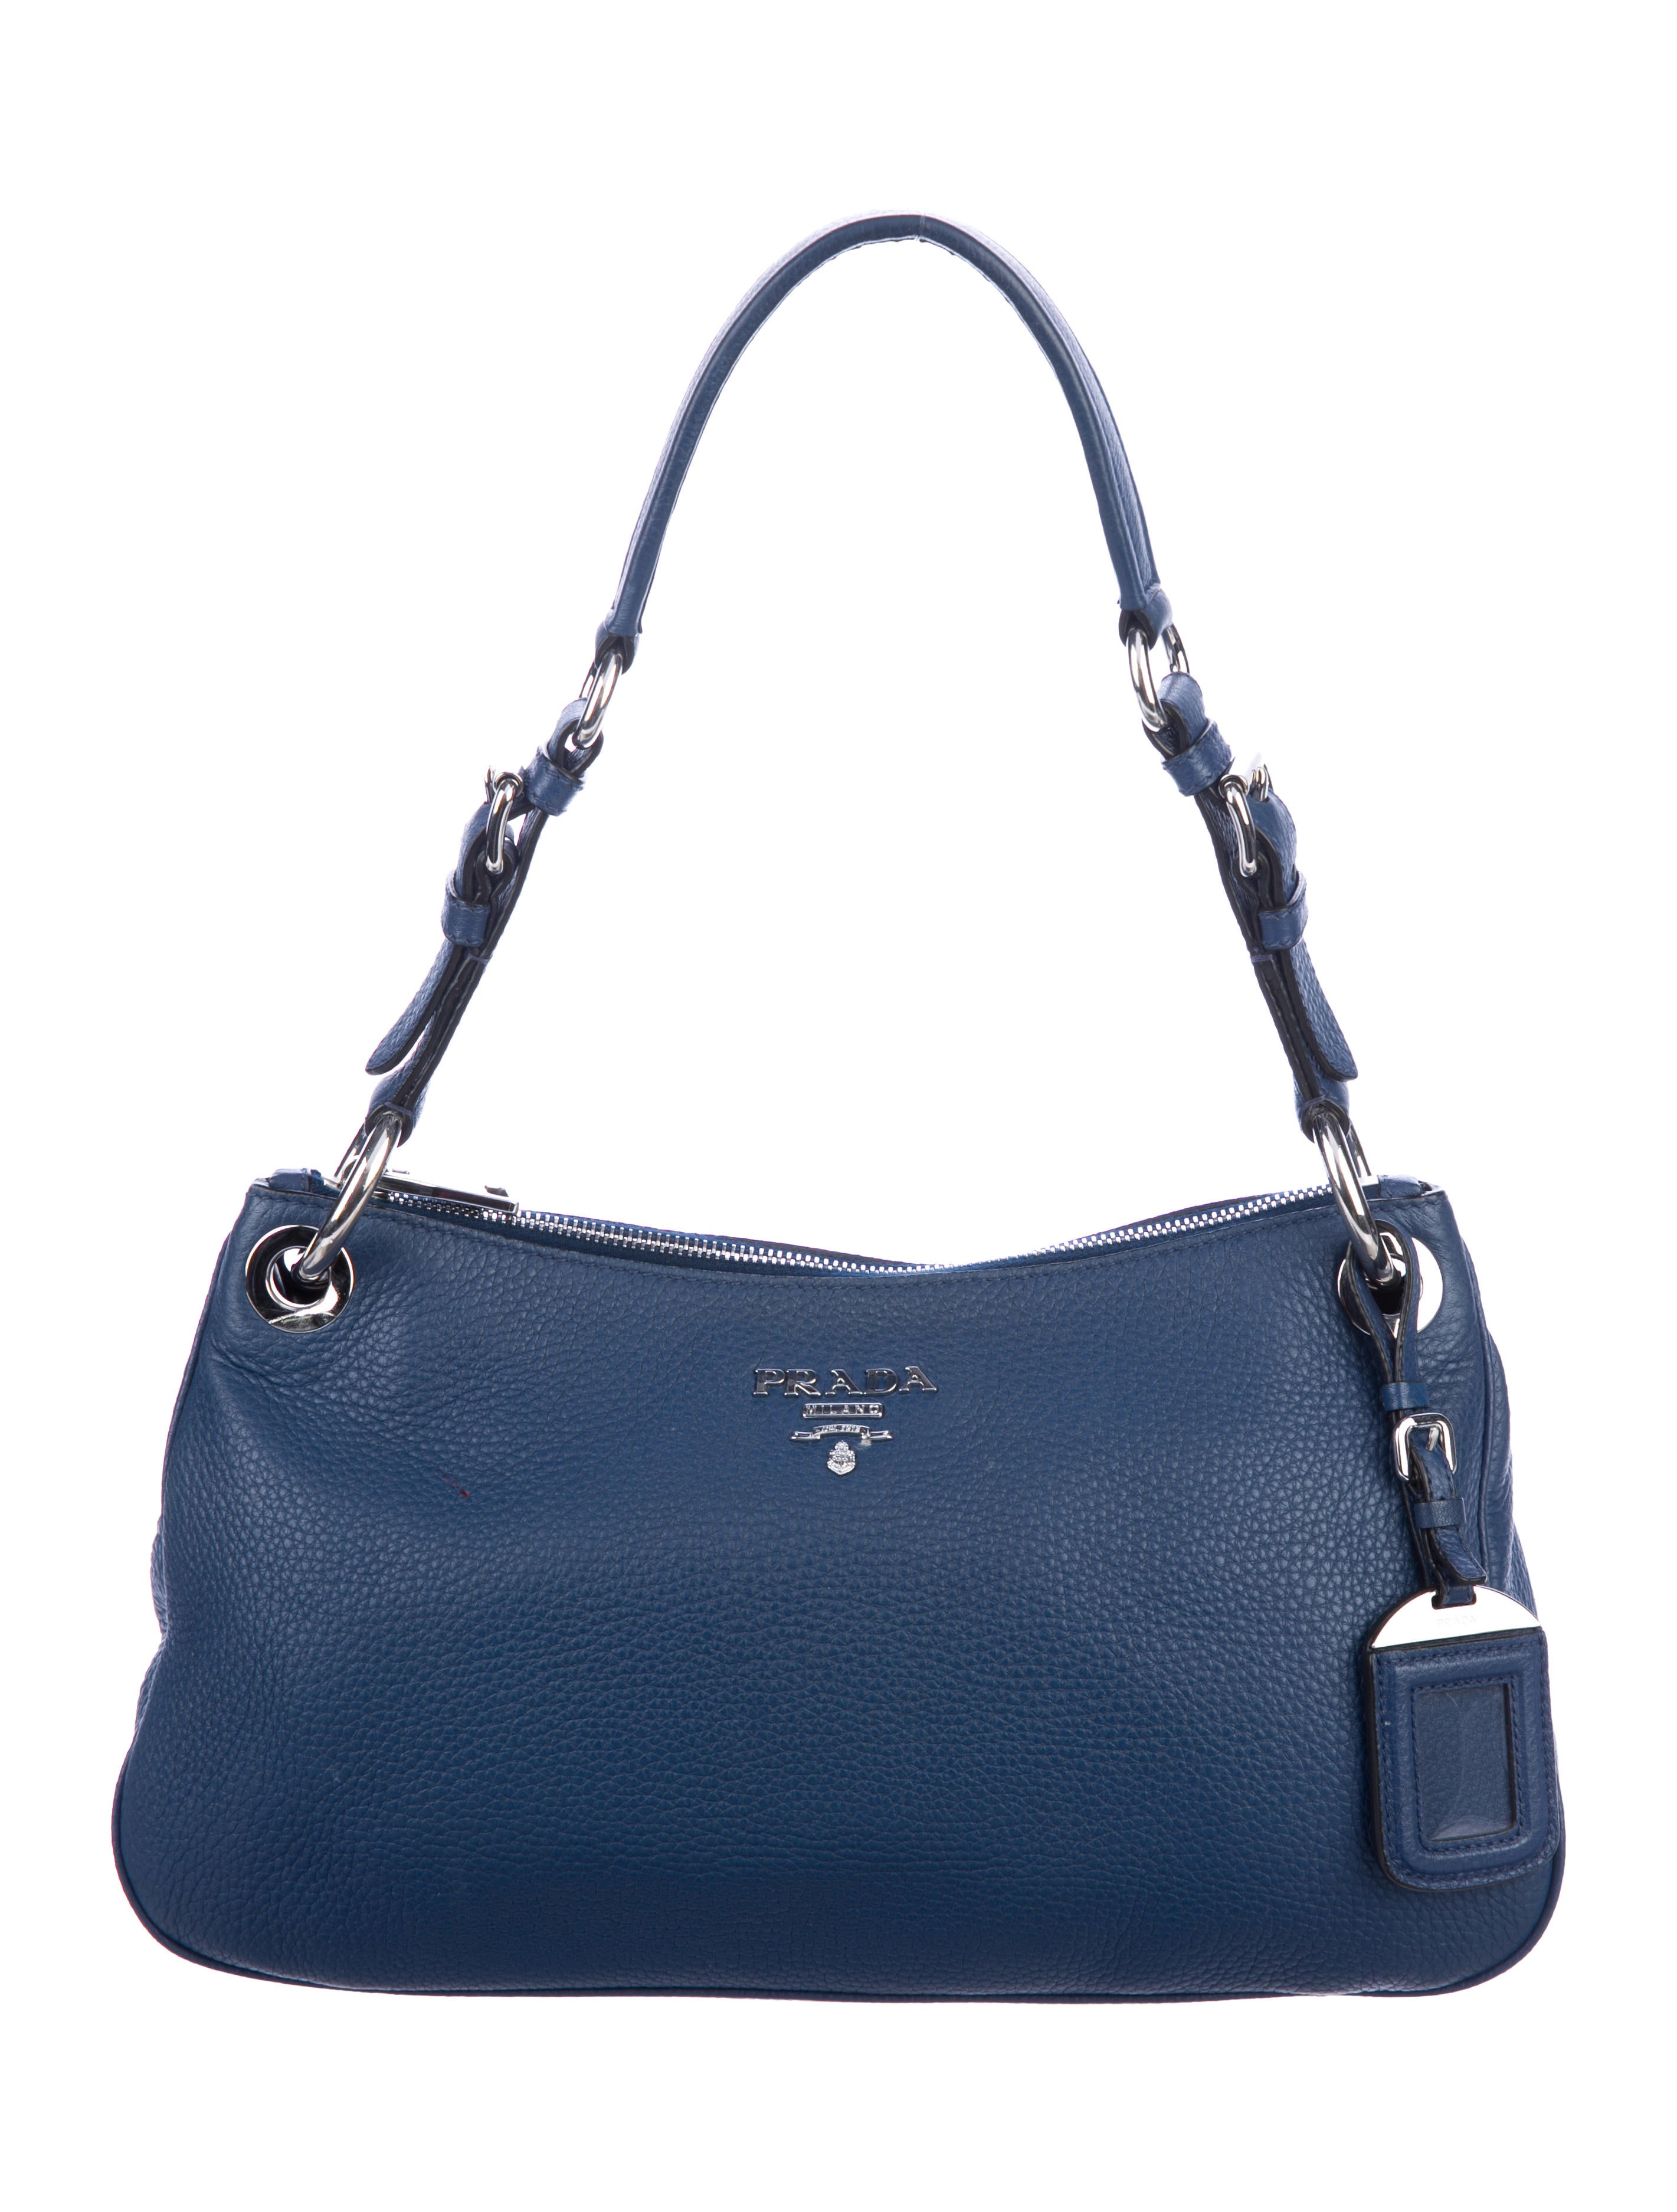 73a34a23a7b7 Prada Vitello Daino Shoulder Bag - Handbags - PRA261716